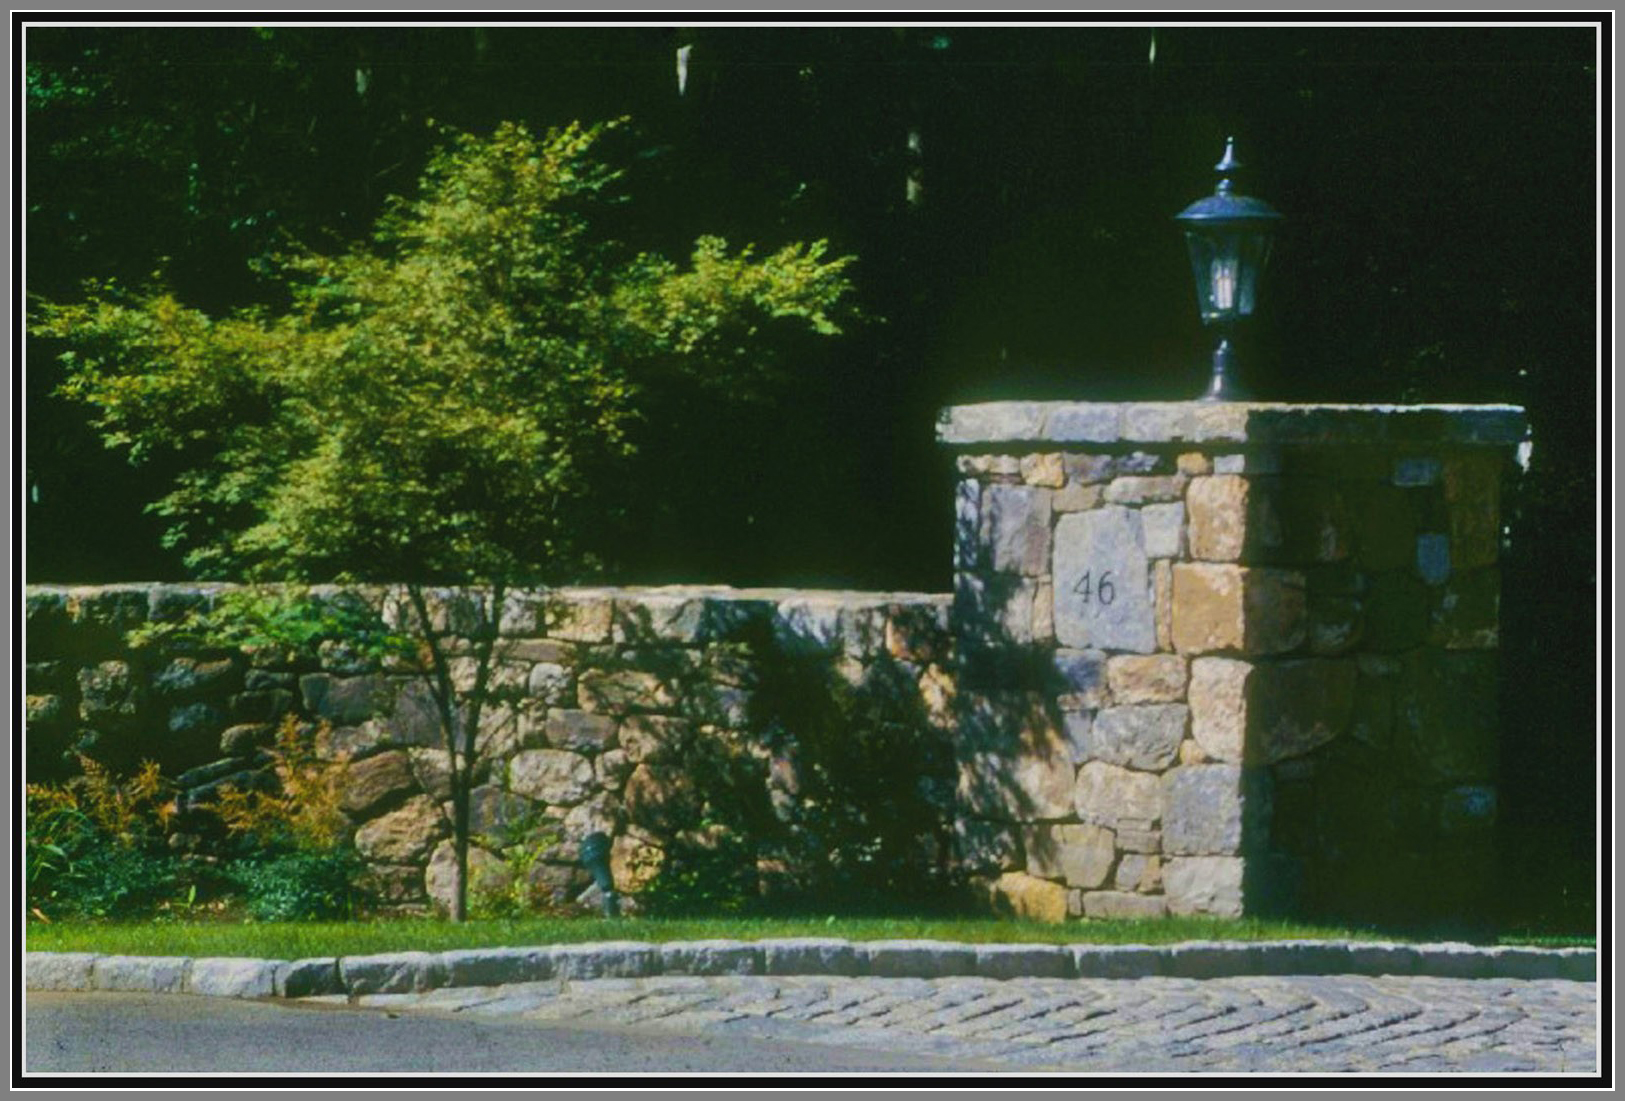 Field stone columns and wall with cobblestone apron and curb